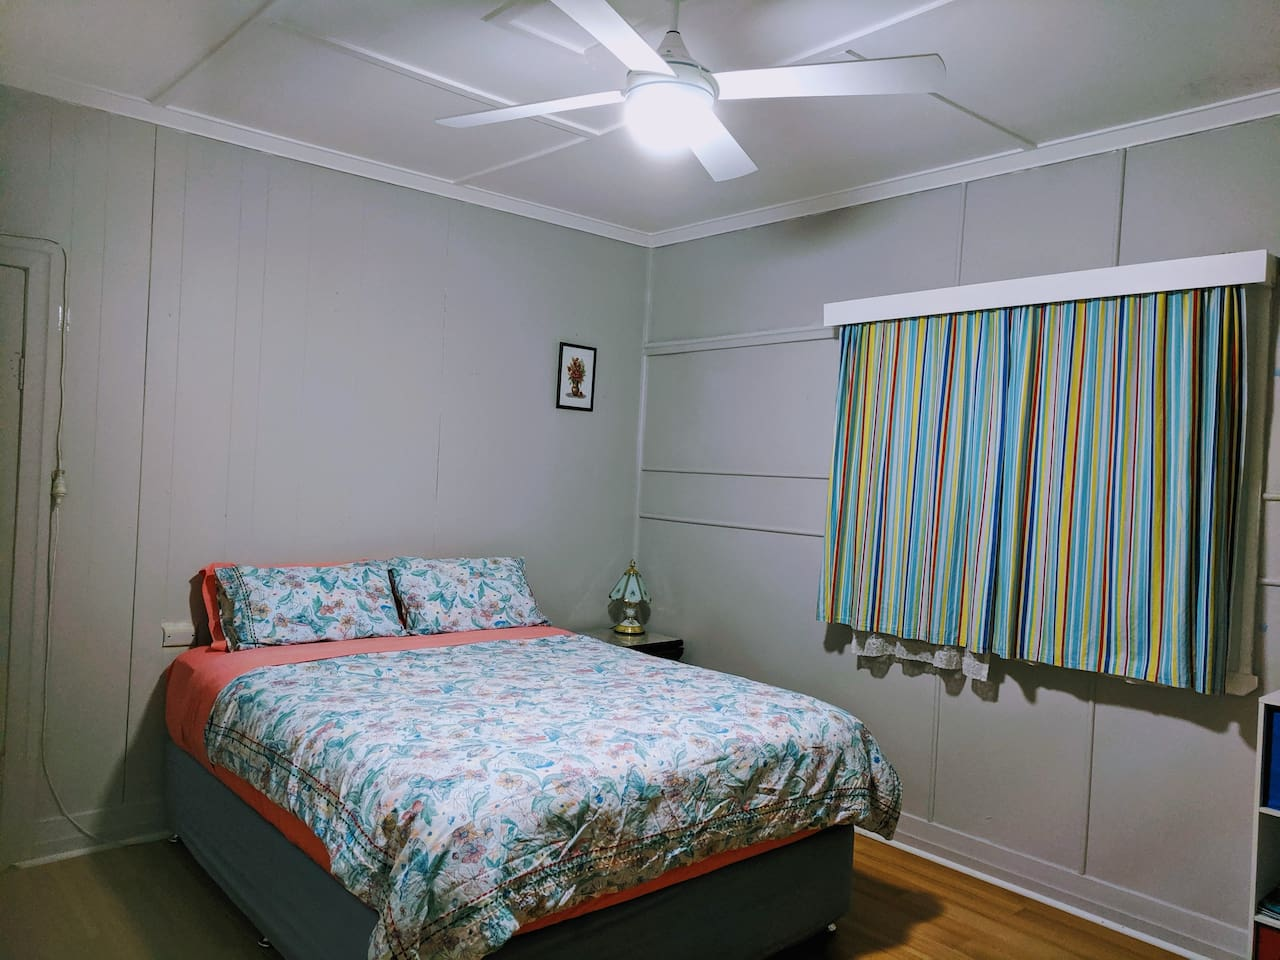 Spacious room has a comfortable bed, a ceiling fan and two windows if you love to have your windows open